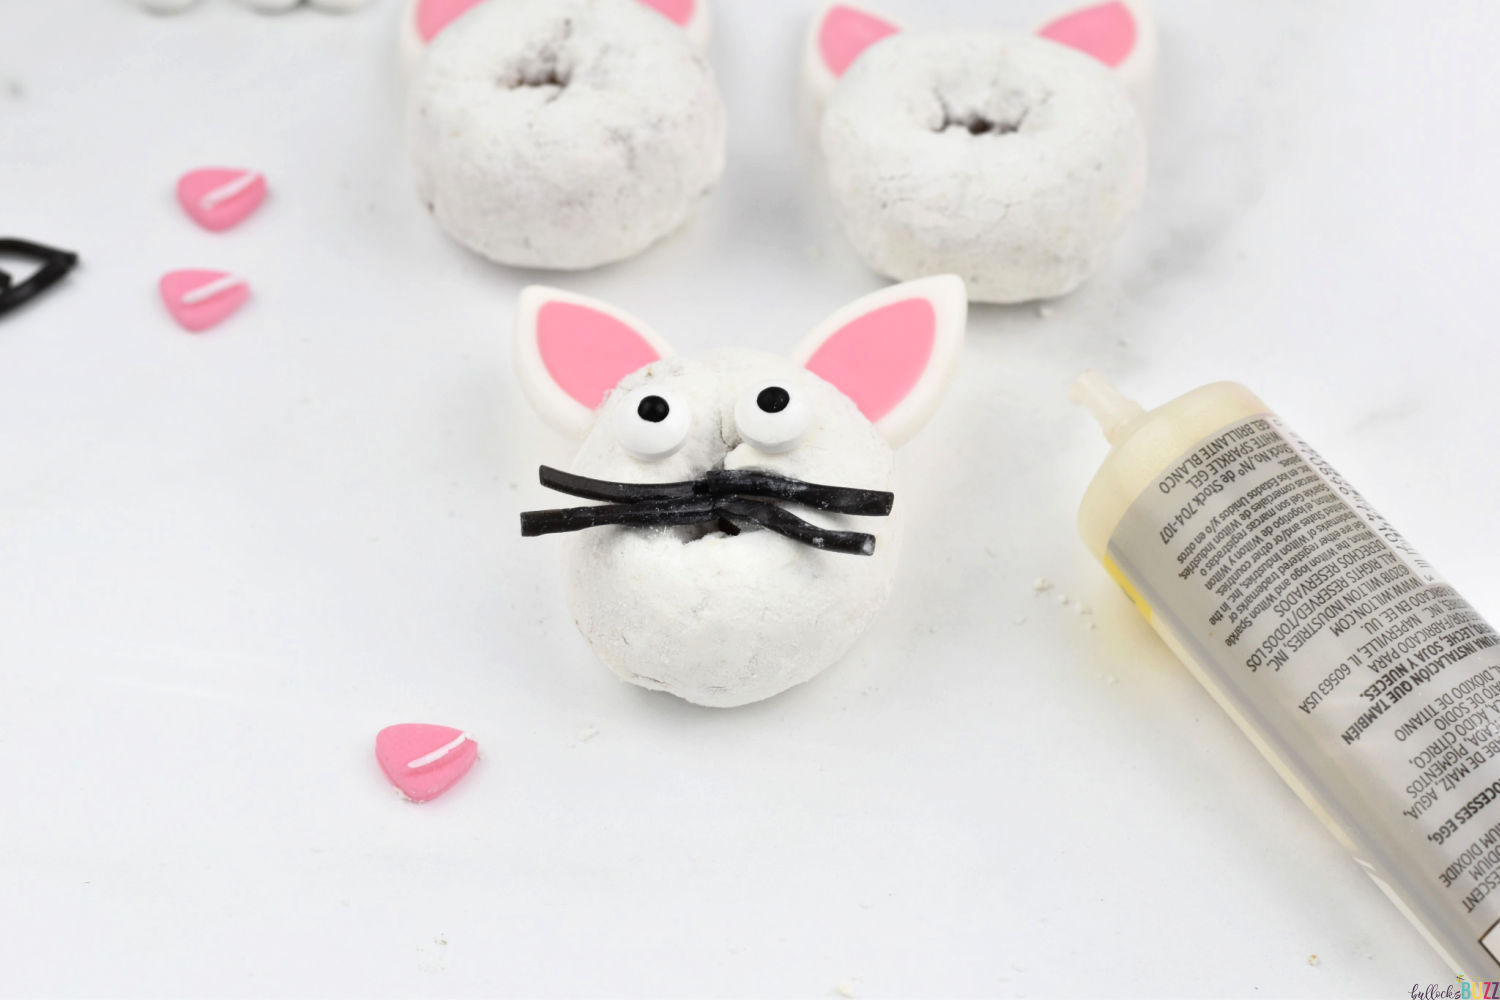 add whiskers to no-bake Easter dessert Easter Bunny Donuts using icing as glue